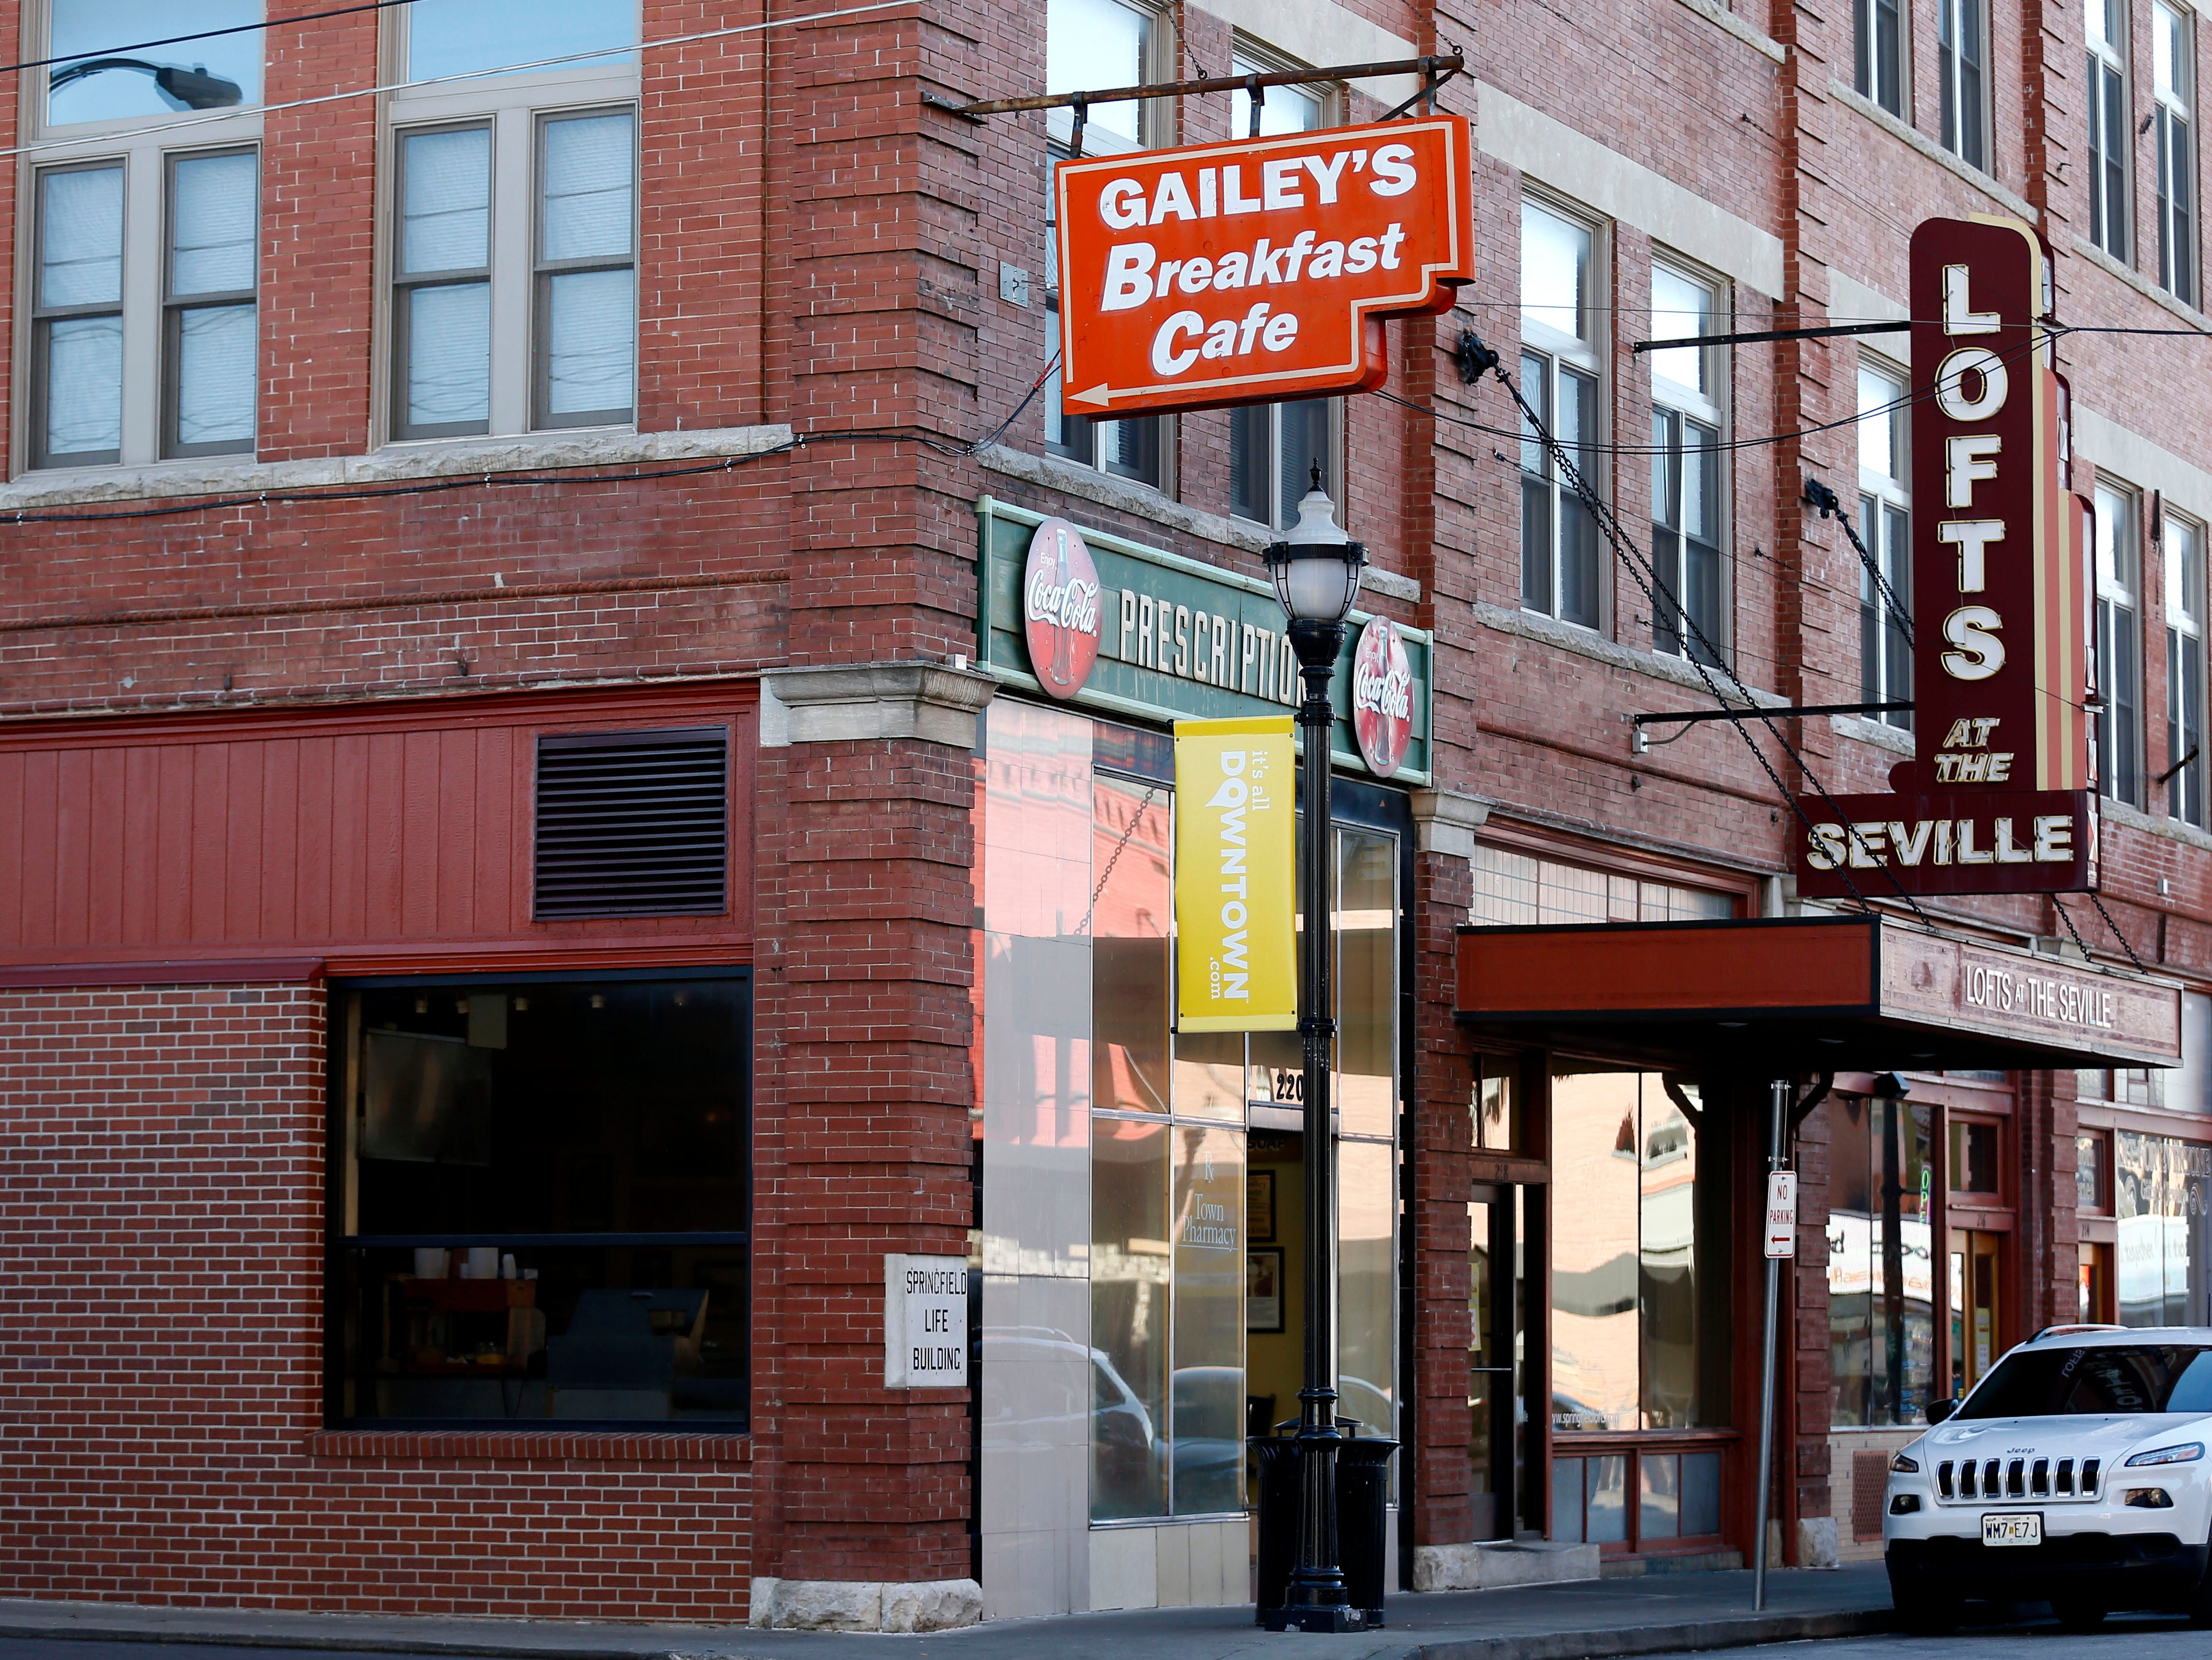 Gailey's Breakfast Cafe opened in 1942 in the location where it still operates today. It was opened by Joe Gailey and originally called Gailey's Drug Store and was a combination pharmacy and soda fountain.